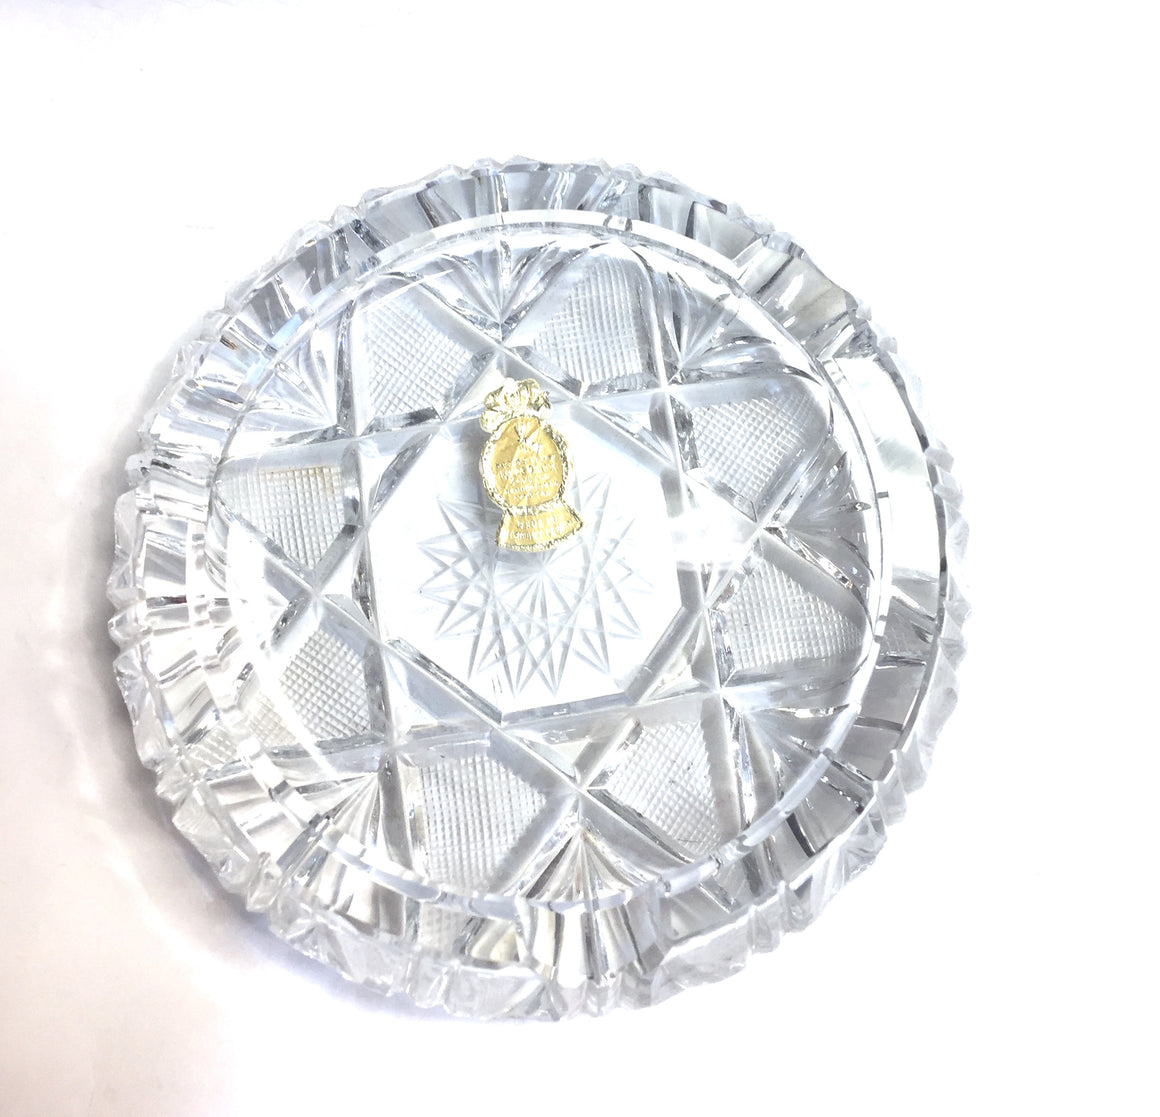 Vintage New IMPERLUX Clear Hand-Cut Etched Crystal Ashtray